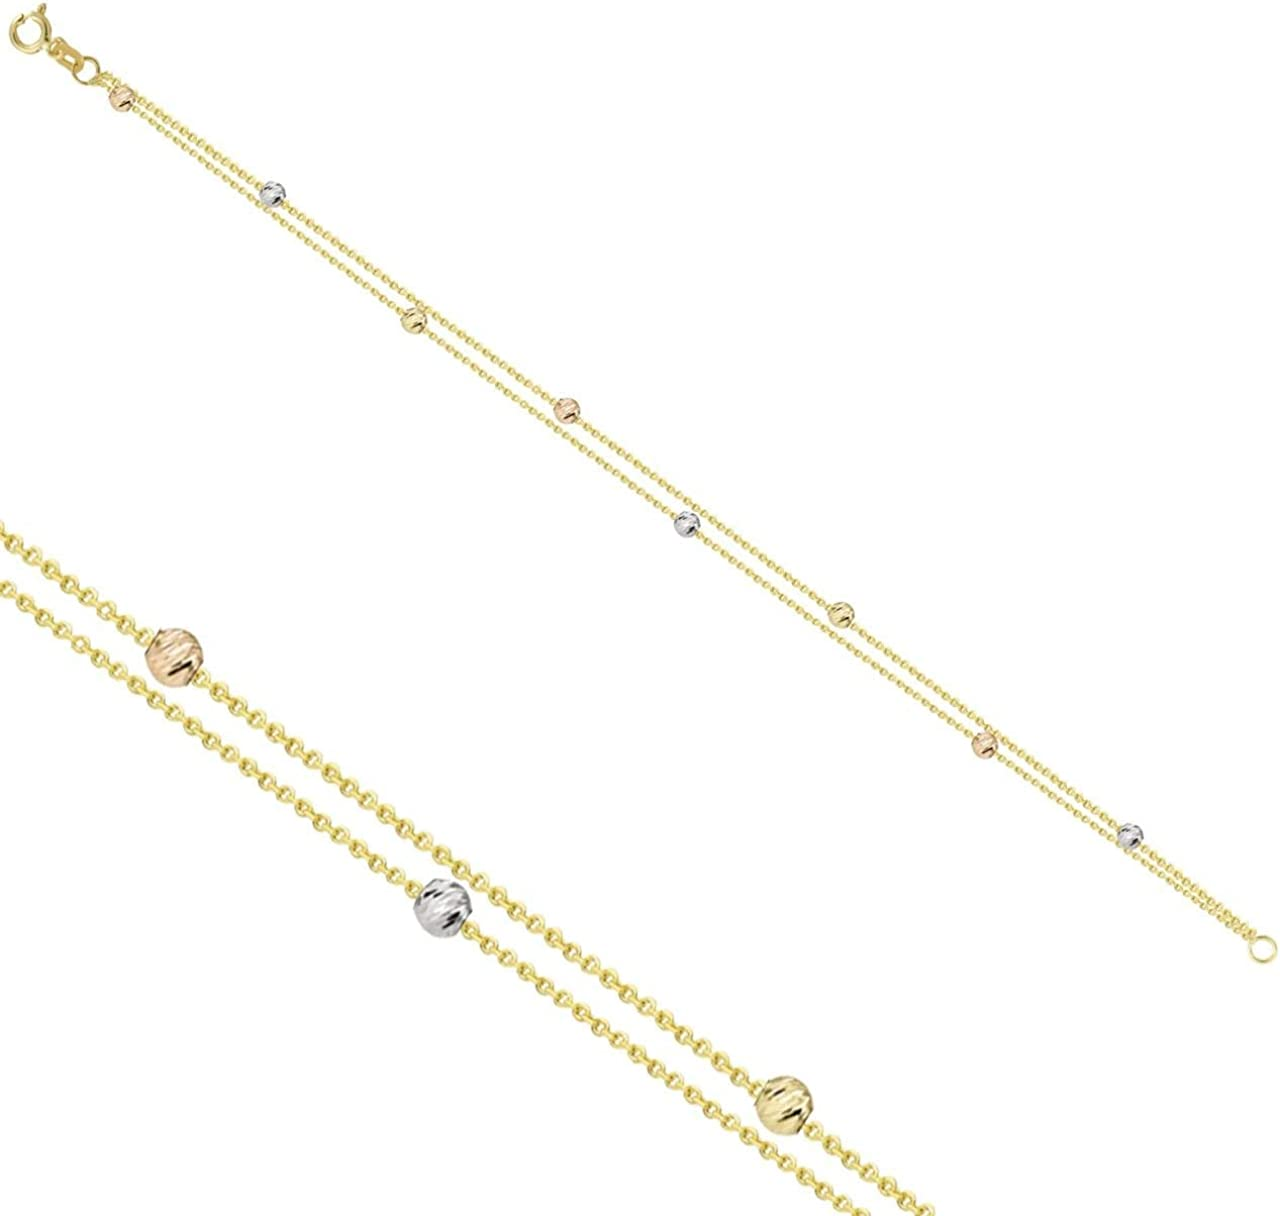 Many popular brands Anelise Bead Pendant 14k Solid Yellow gr 7.3 1.36 Gold Spring new work one after another Bracelet